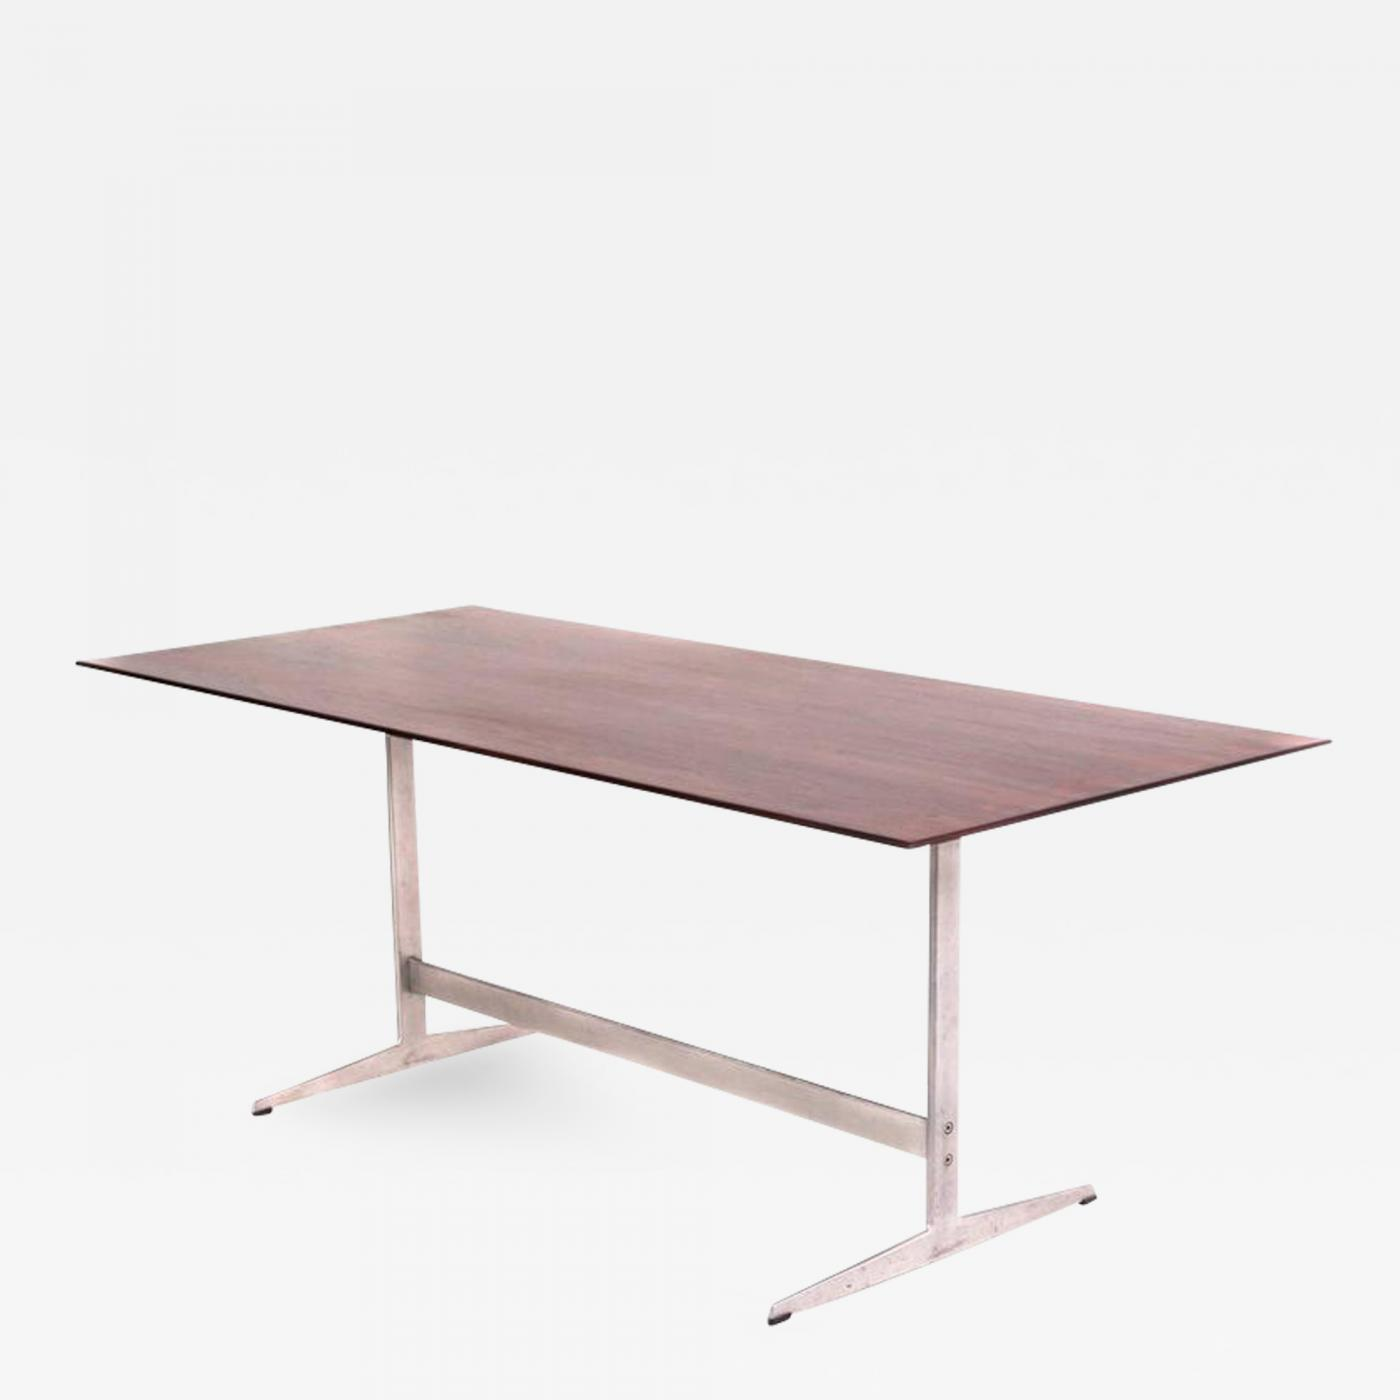 Arne Jacobsen Arne Jacobsen Shaker Dining Table in Rosewood